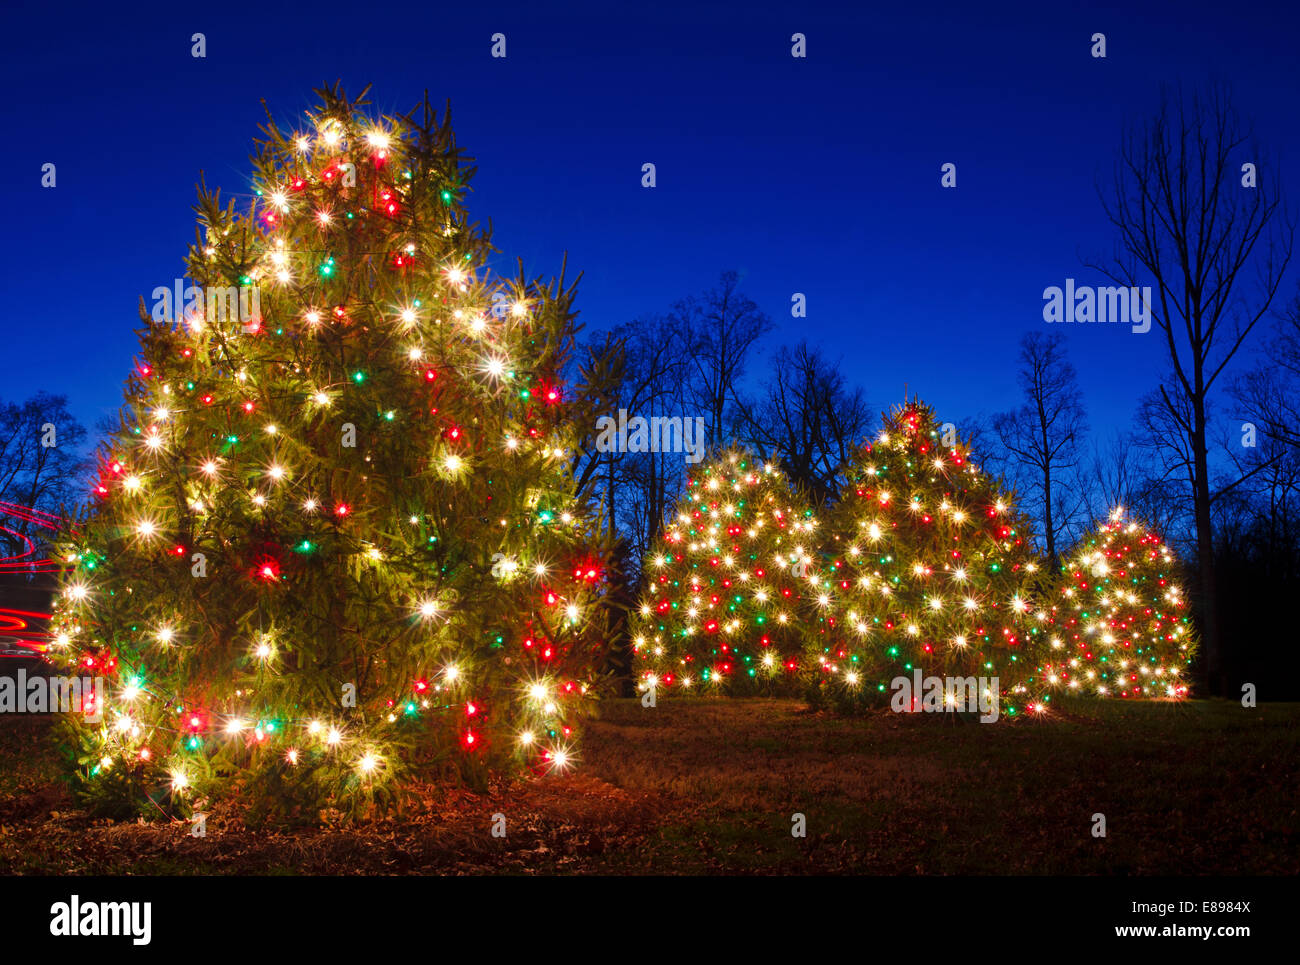 Outdoor christmas trees have been decorated with red green and outdoor christmas trees have been decorated with red green and white lights and shot against a brilliant blue sky mozeypictures Choice Image